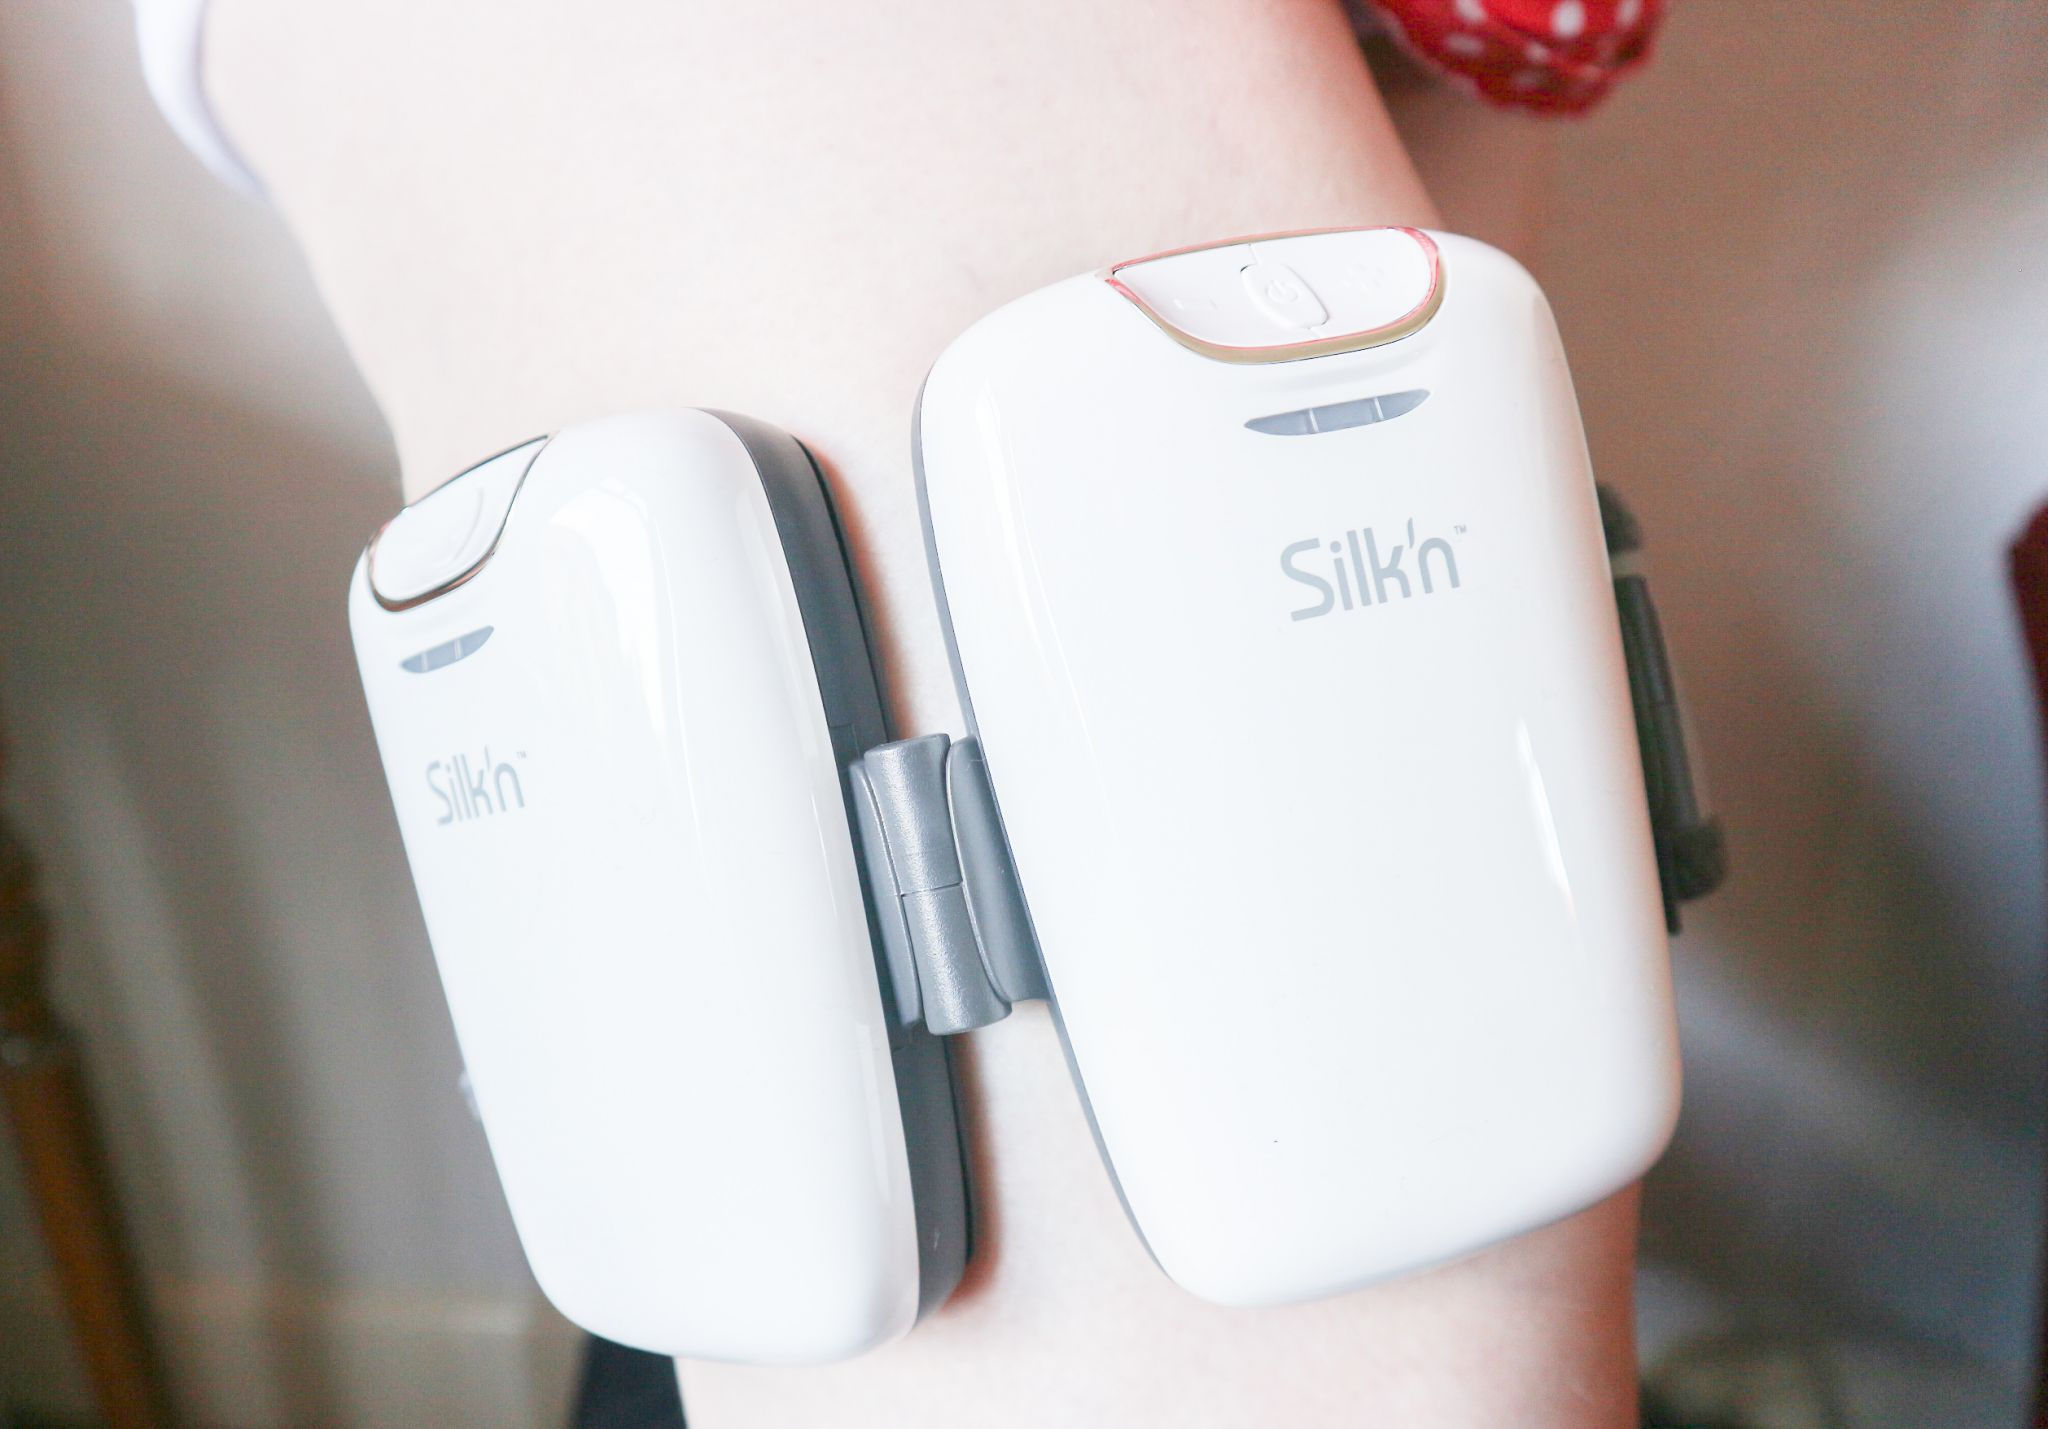 silk'n lipo review